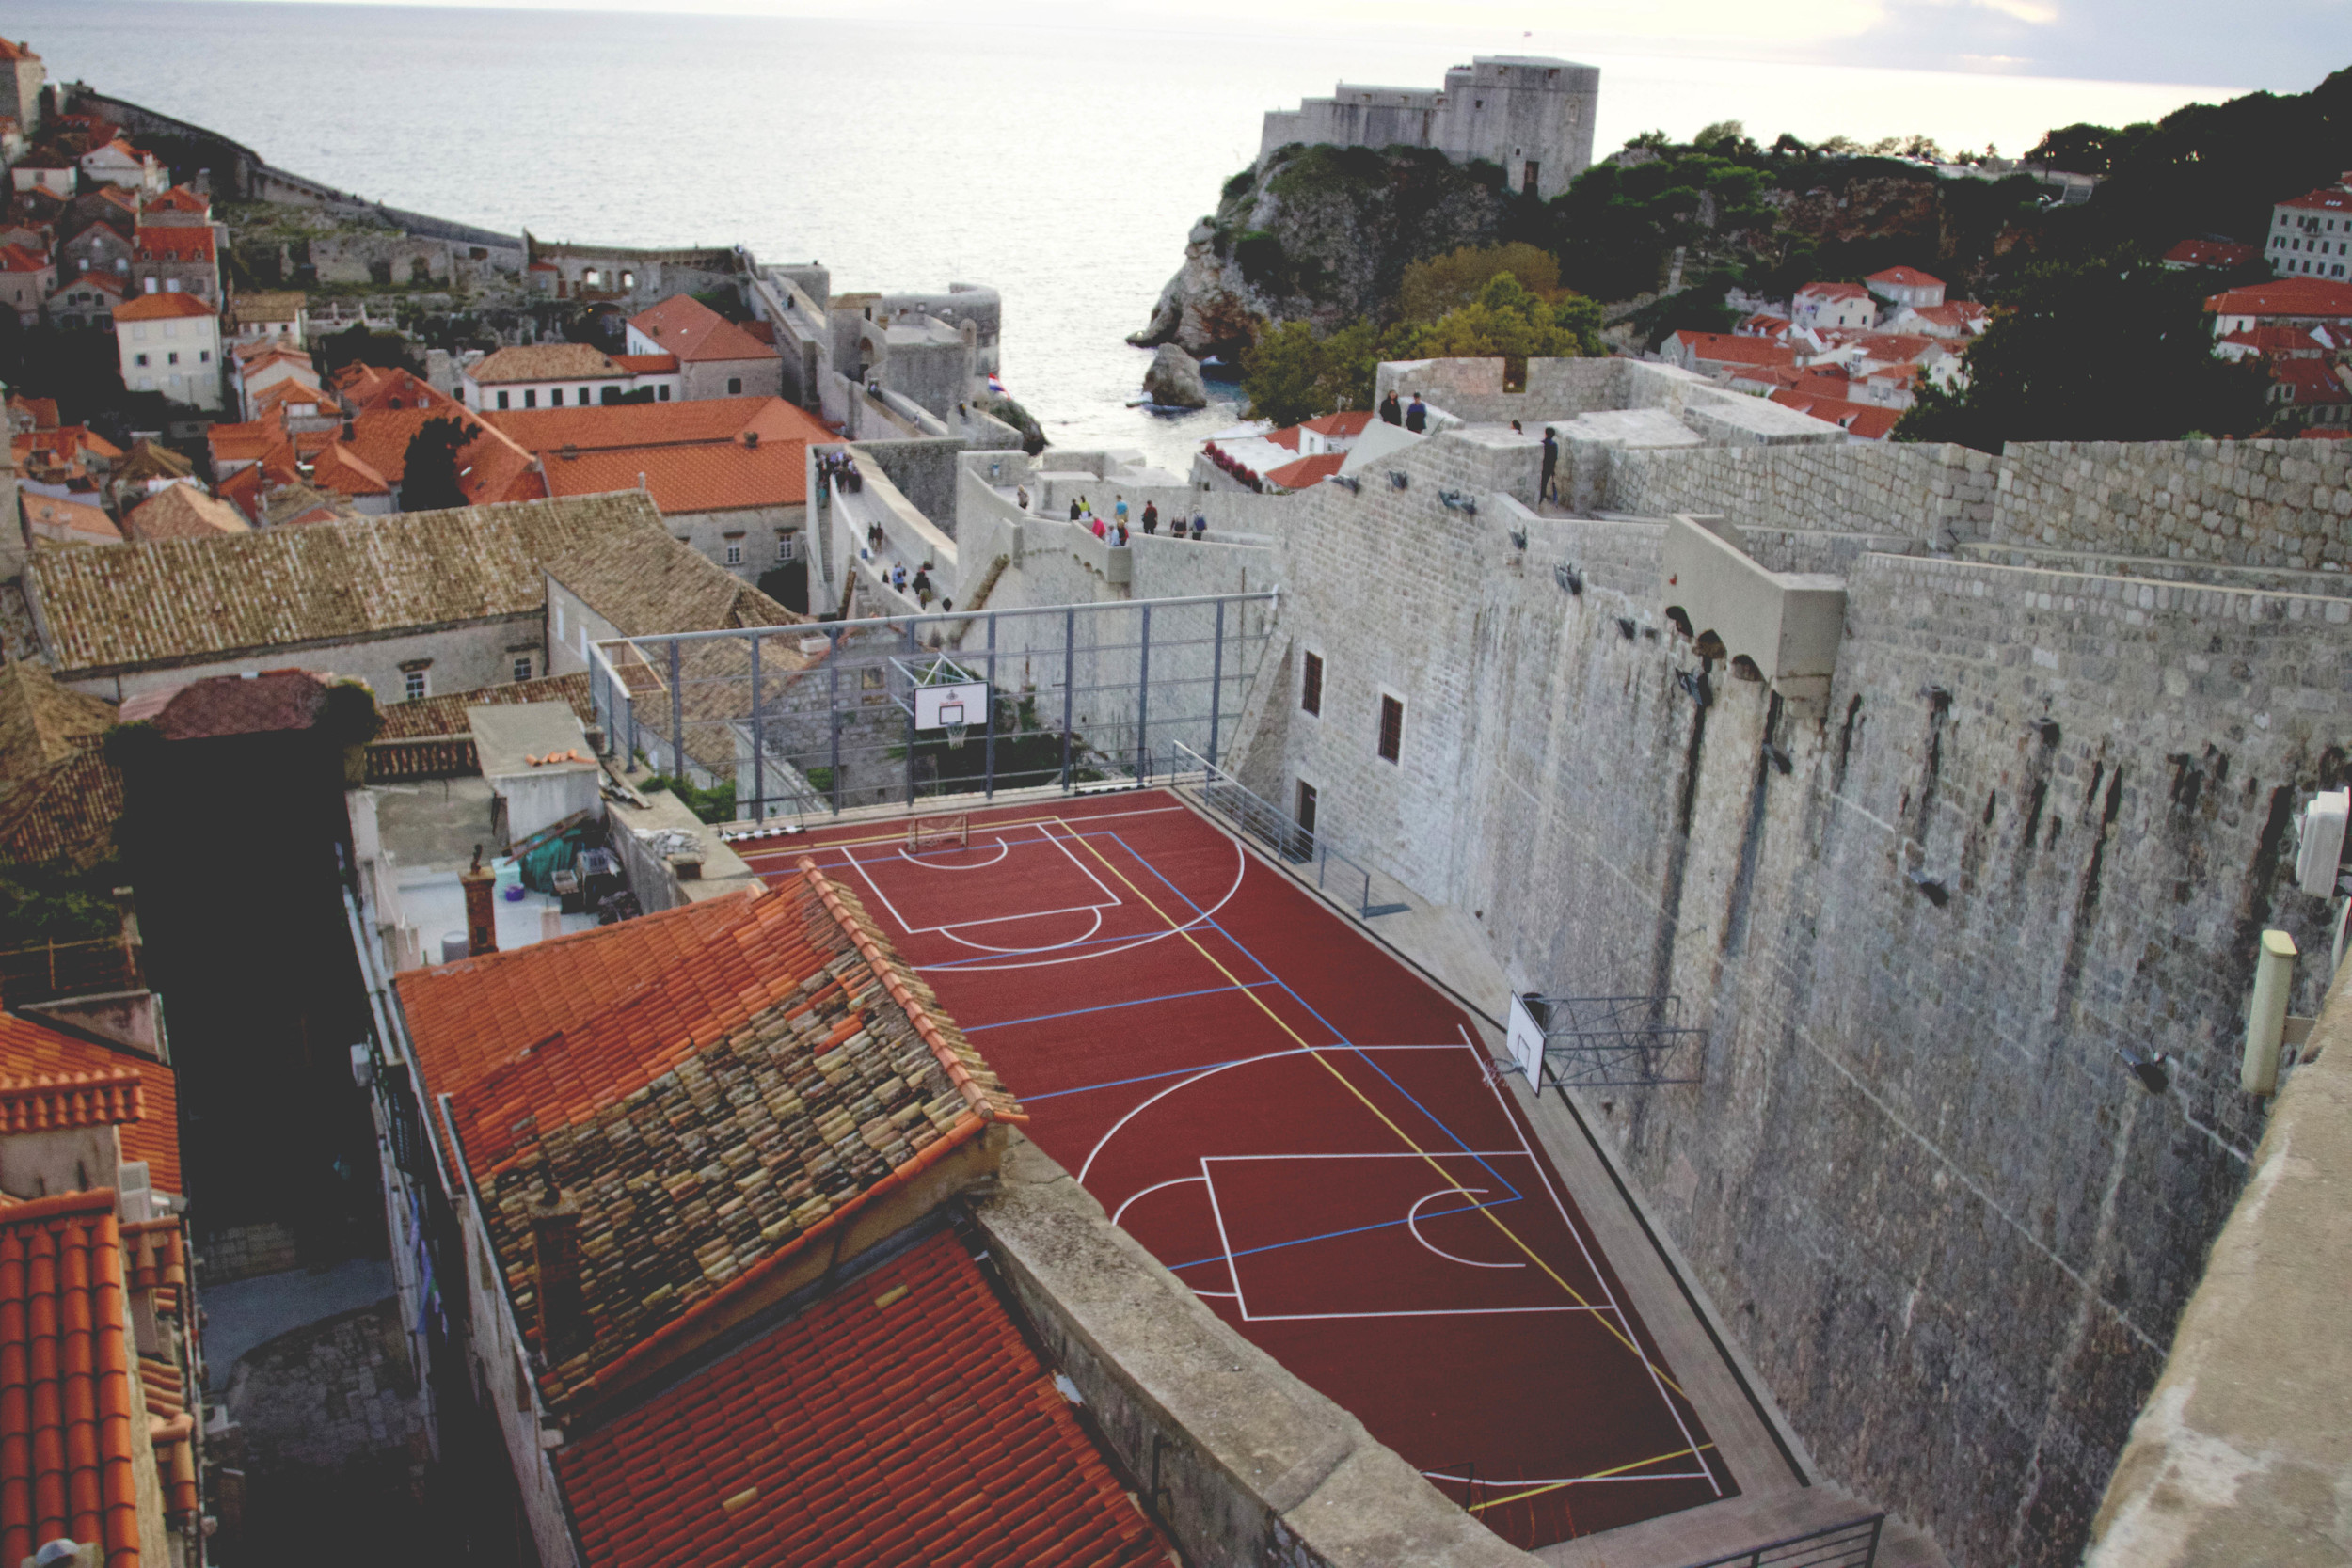 Coolest basketball court ever?